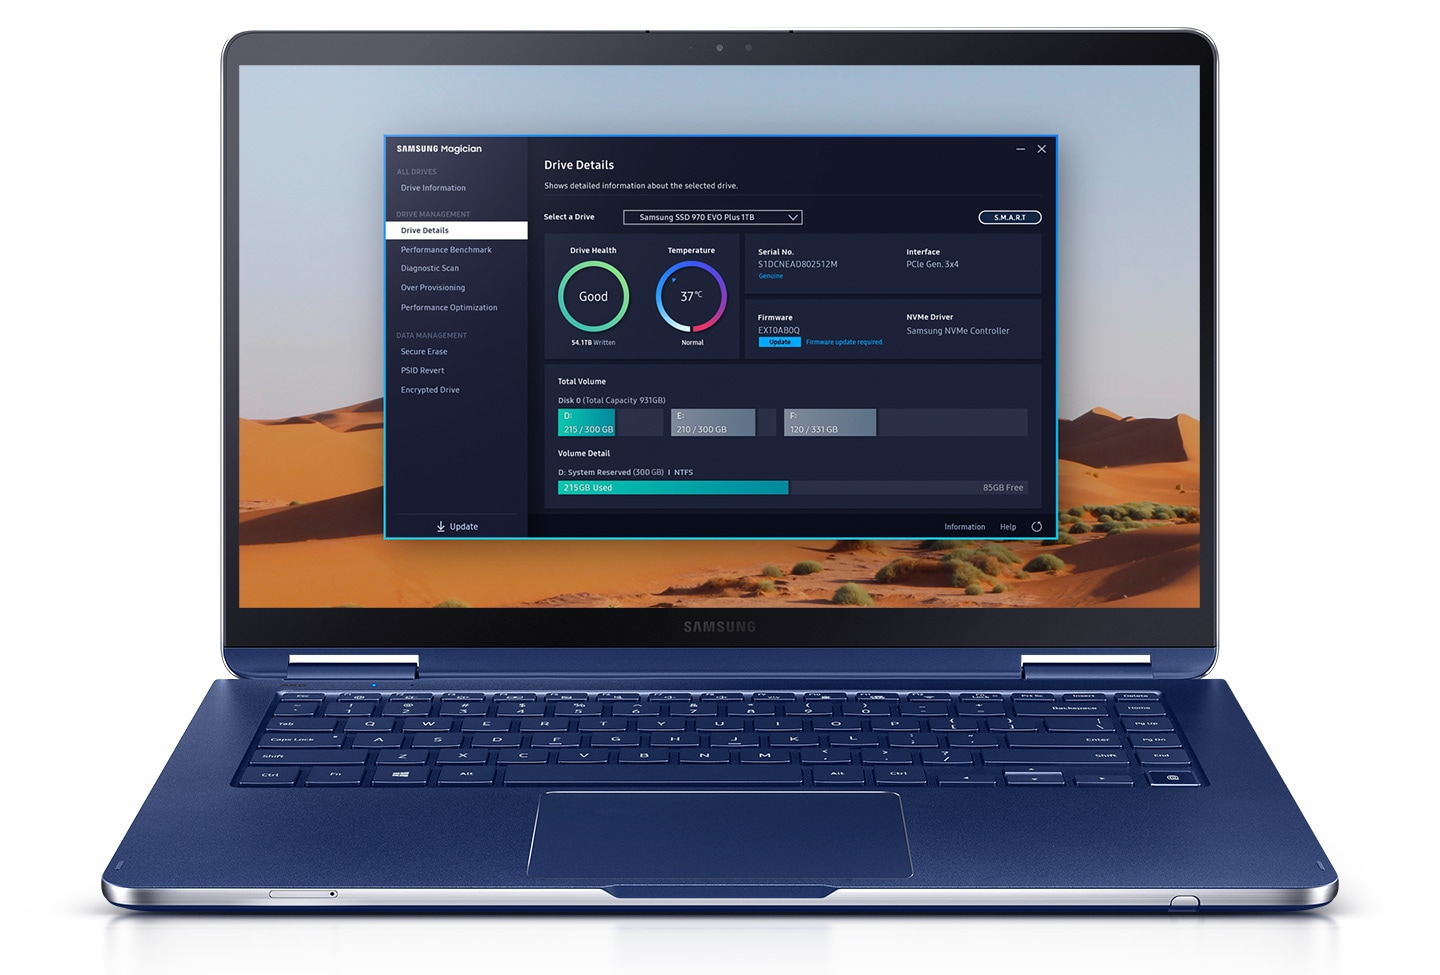 An image of Samsung Magician Software displaying drive details on the laptop screen.